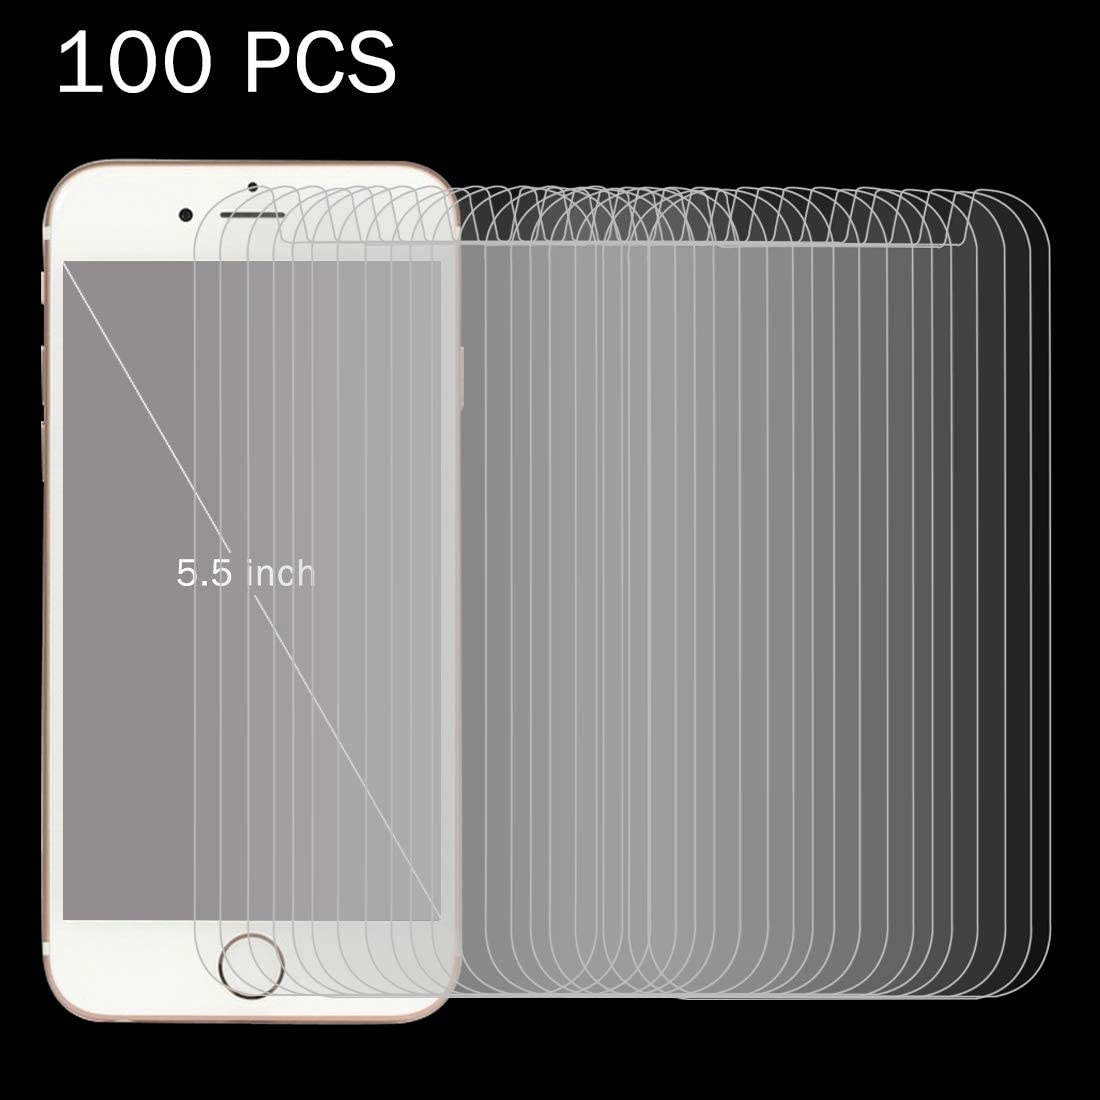 Pokjsofjnjlfkl Phone Products 100 PCS 0.26mm 9H Surface Hardness 2.5D Explosion-Proof Tempered Glass Screen Film for 5.5 inch Mobile Phones Screen Protectors for Phone